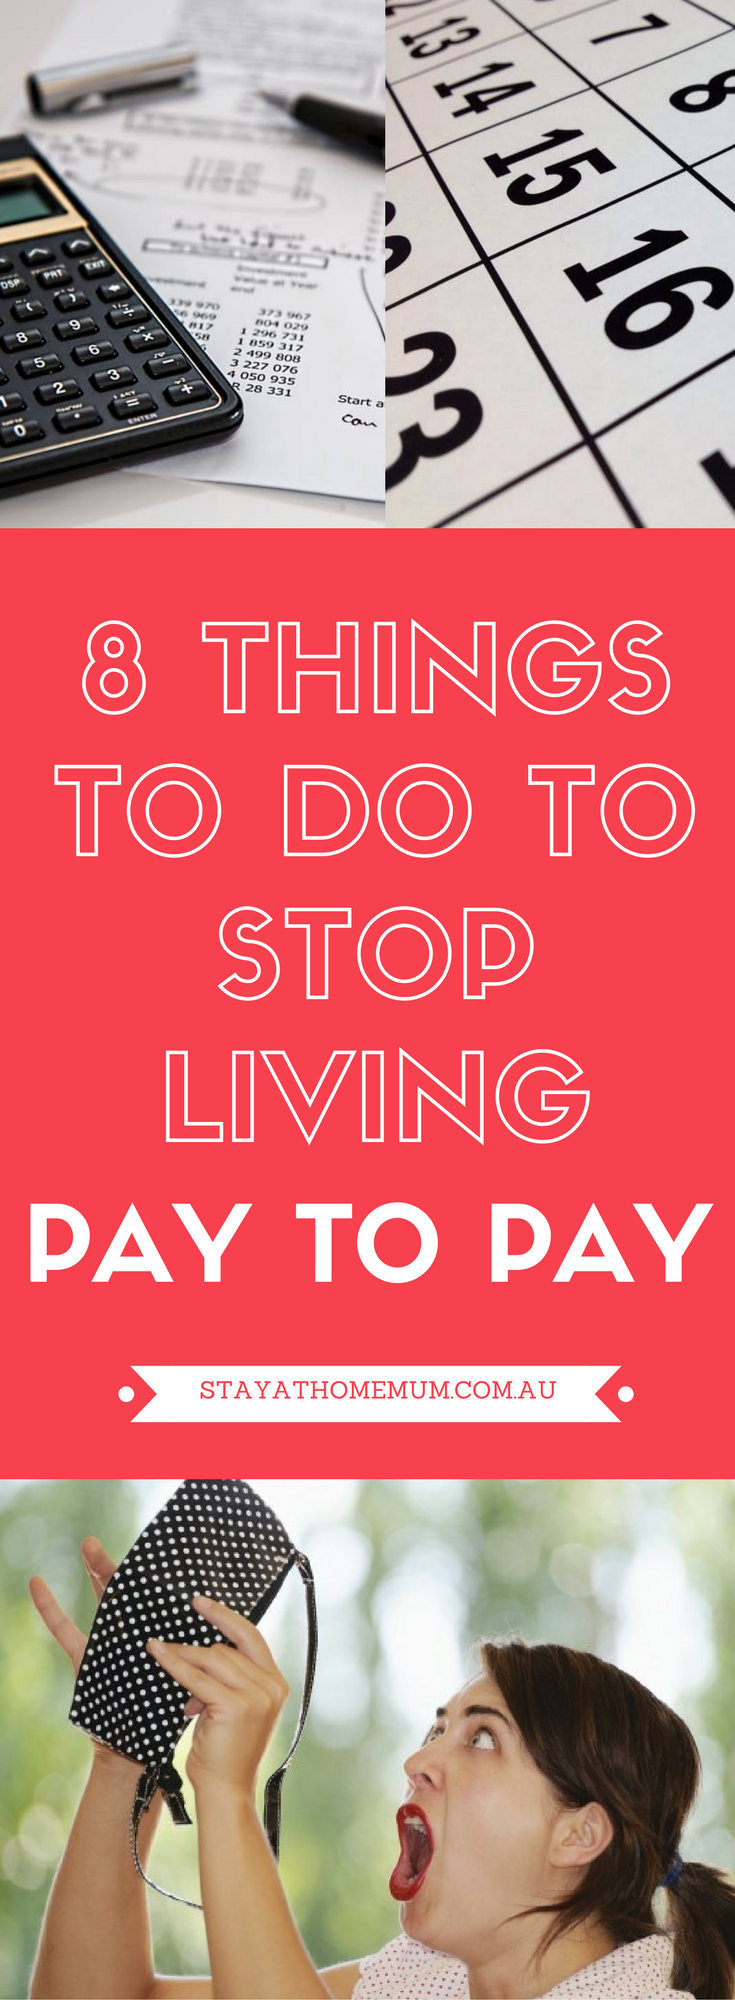 8 Things to Do to Stop Living Pay to Pay (1)